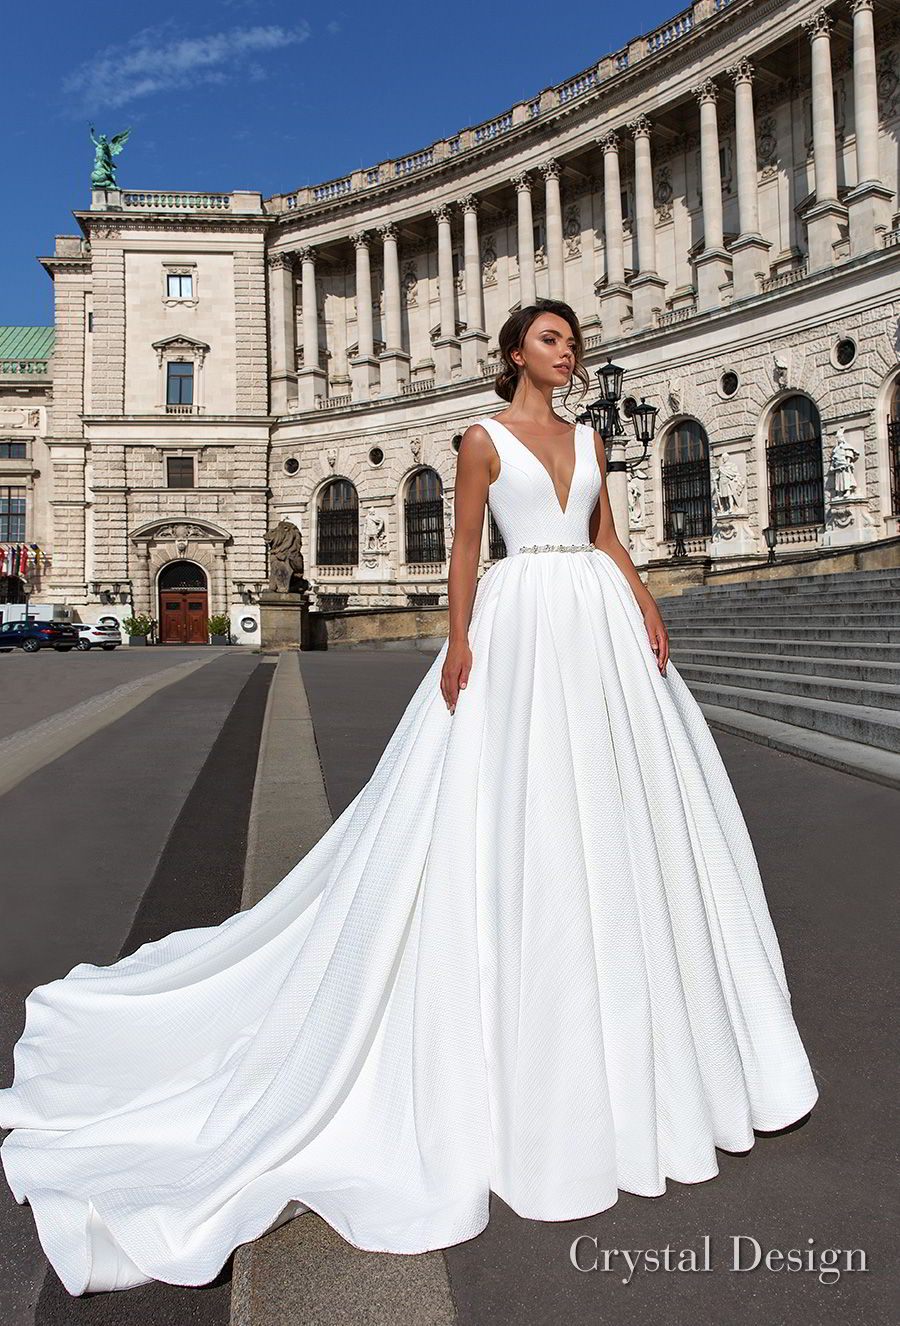 Crystal design 2018 wedding dresses royal garden haute couture crystal design 2018 sleeveless deep v neck simple princess elegant ball gown a line wedding dress junglespirit Choice Image